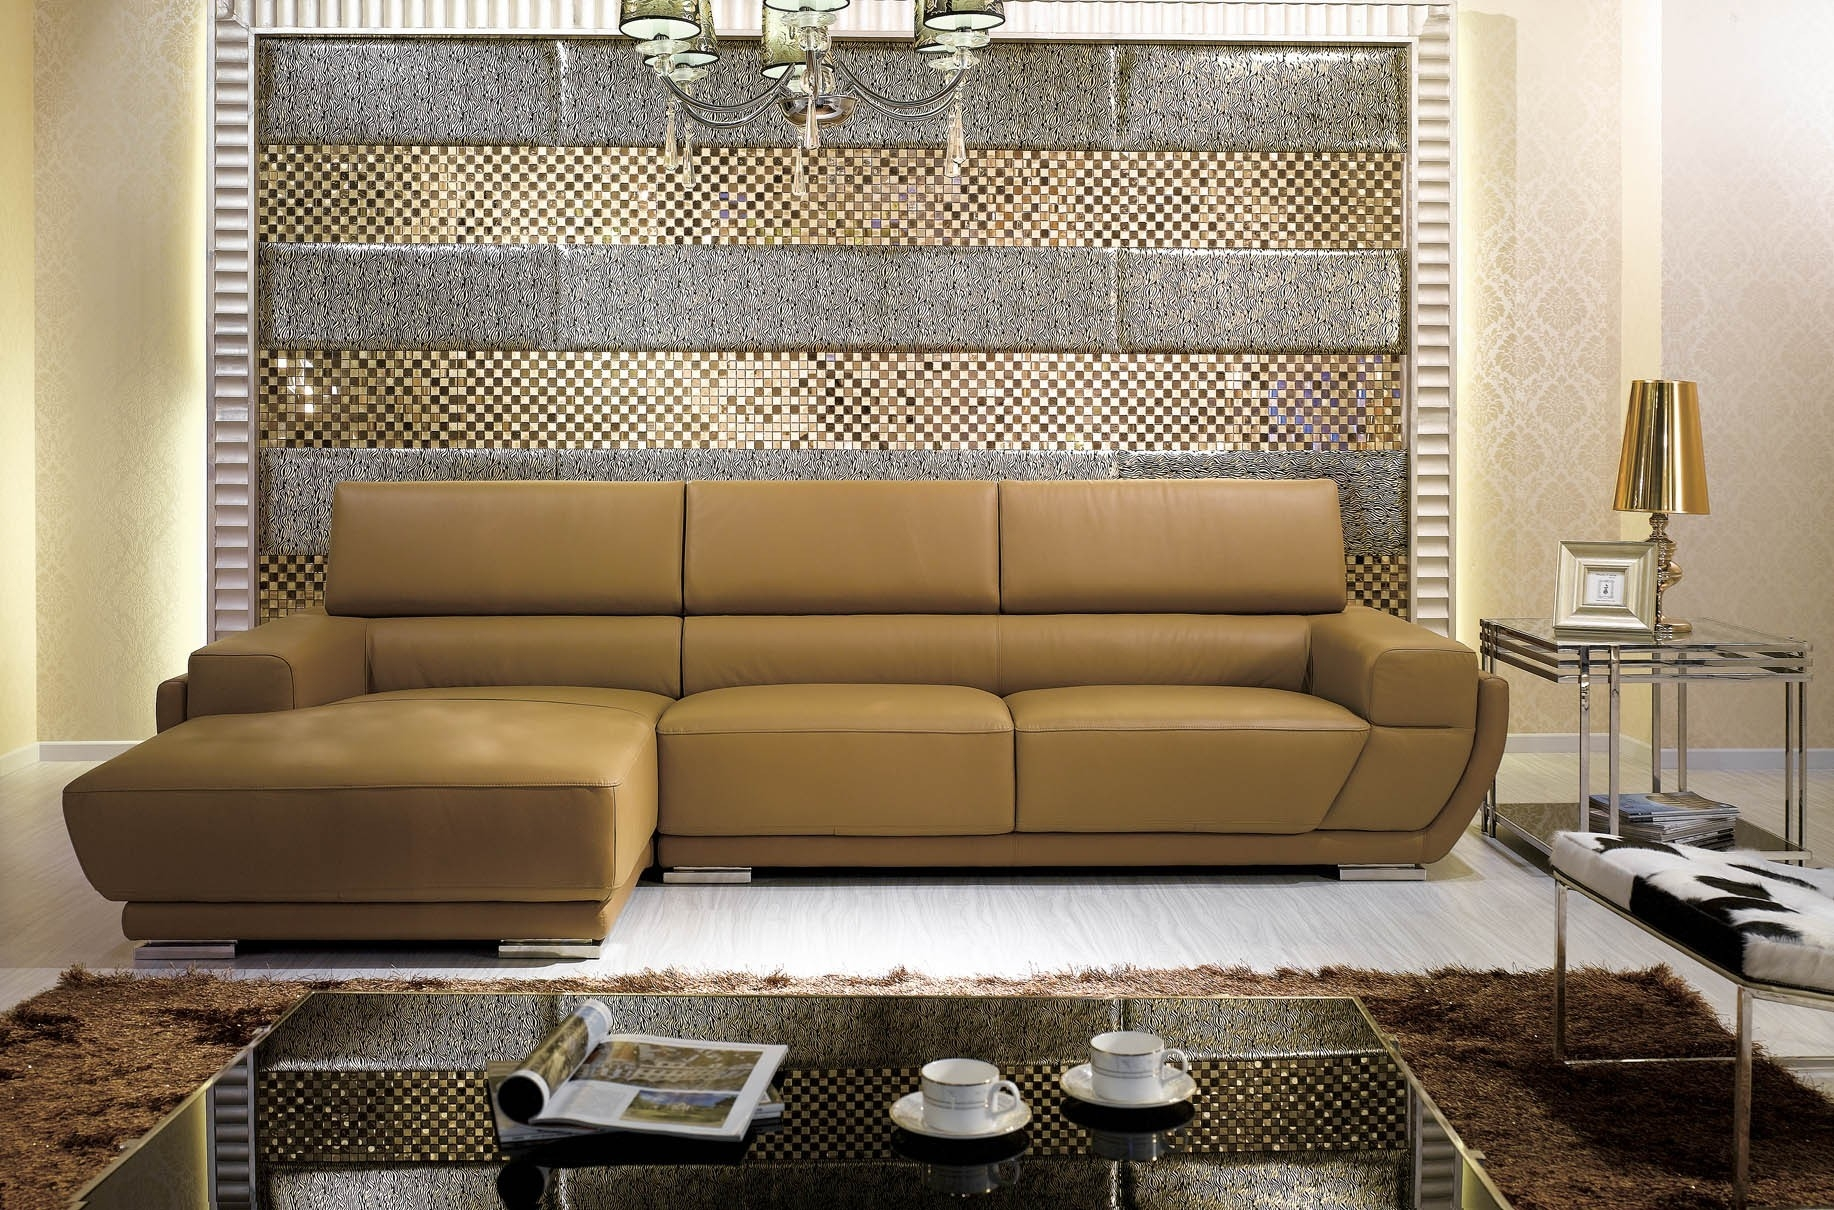 K8300 Modern Camel Italian Leather Sectional Sofa With Camel Sectional Sofa (View 8 of 15)